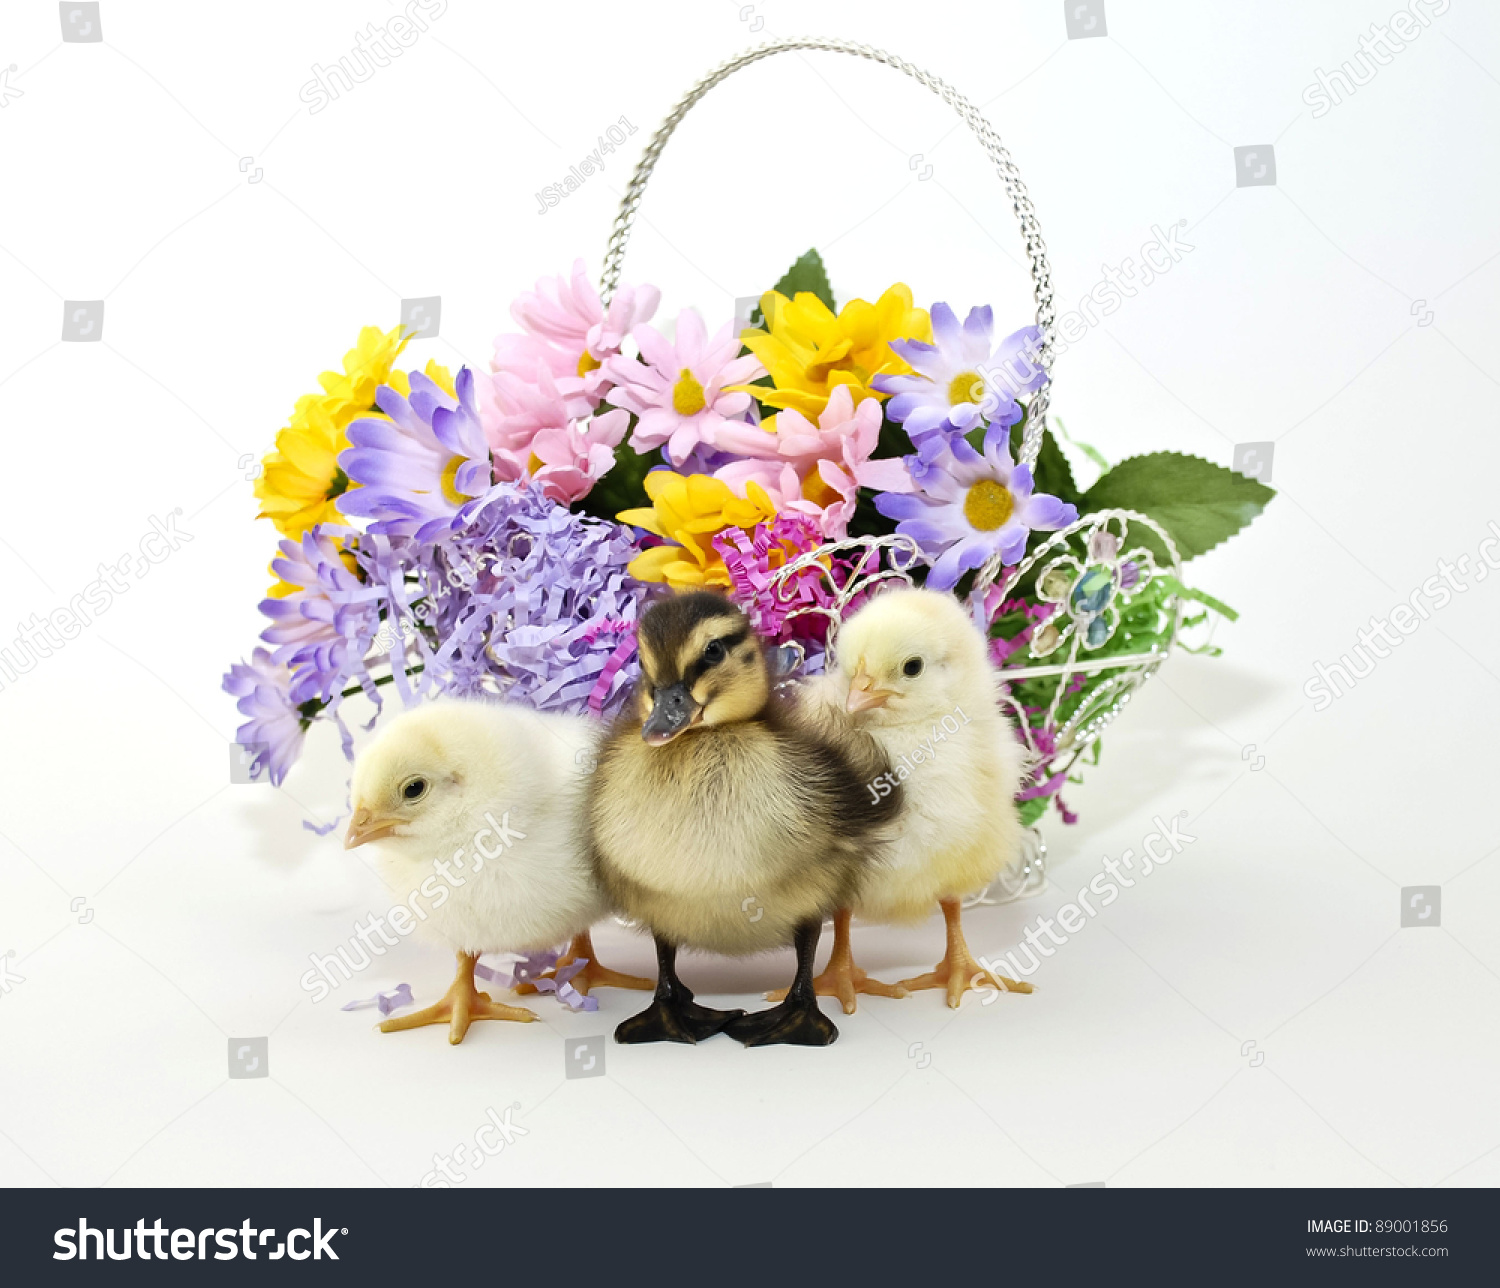 Easter Peeps And Baby Duckling Sitting With An Easter Basket Full Of